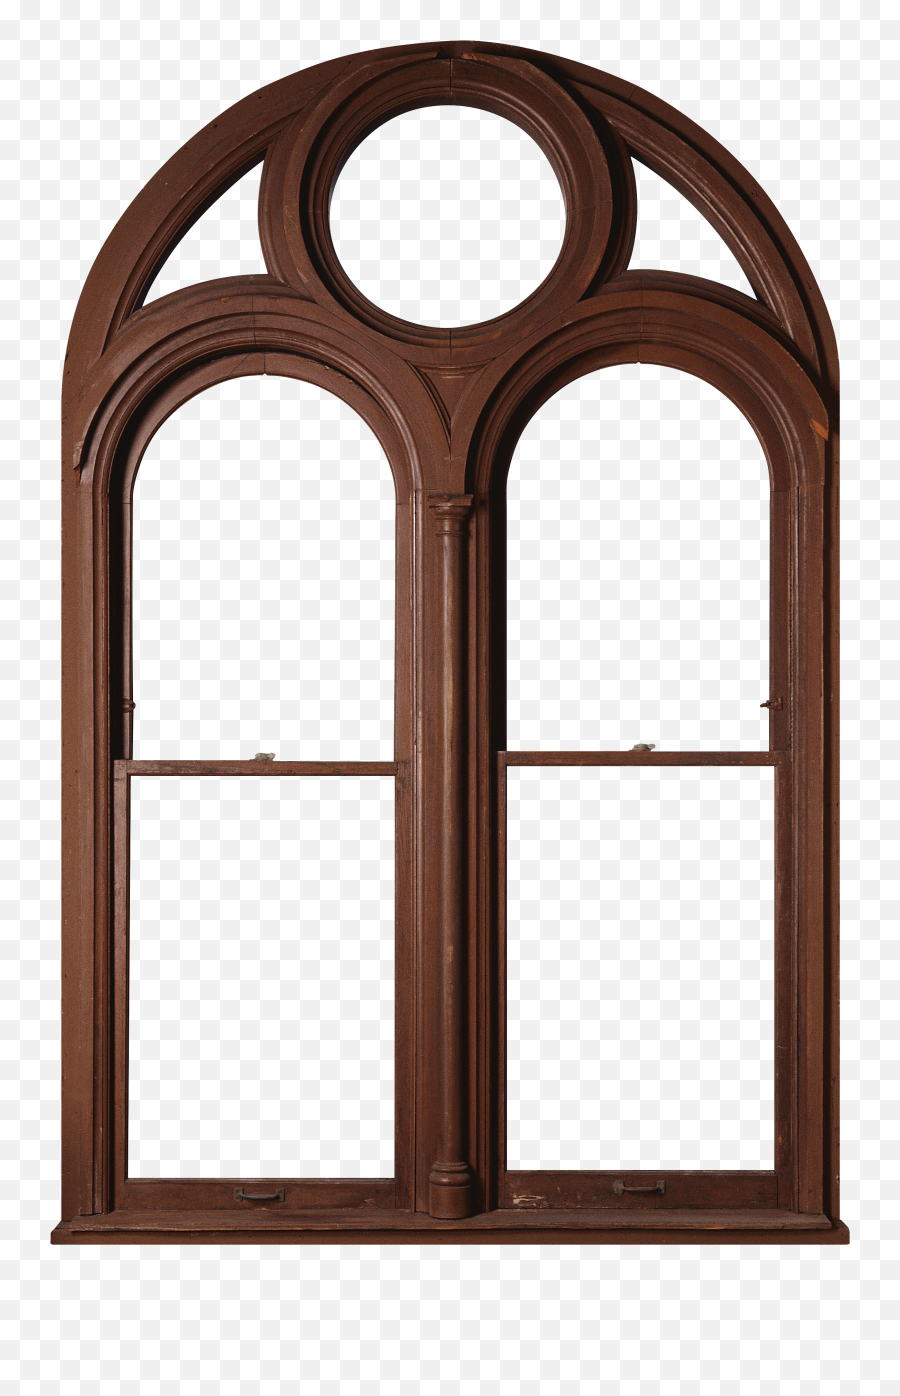 Sri Lanka Wood Windows Design Window Frame Wooden Arch Wood Window Frame Window Design Png Free Transparent Png Images Pngaaa Com